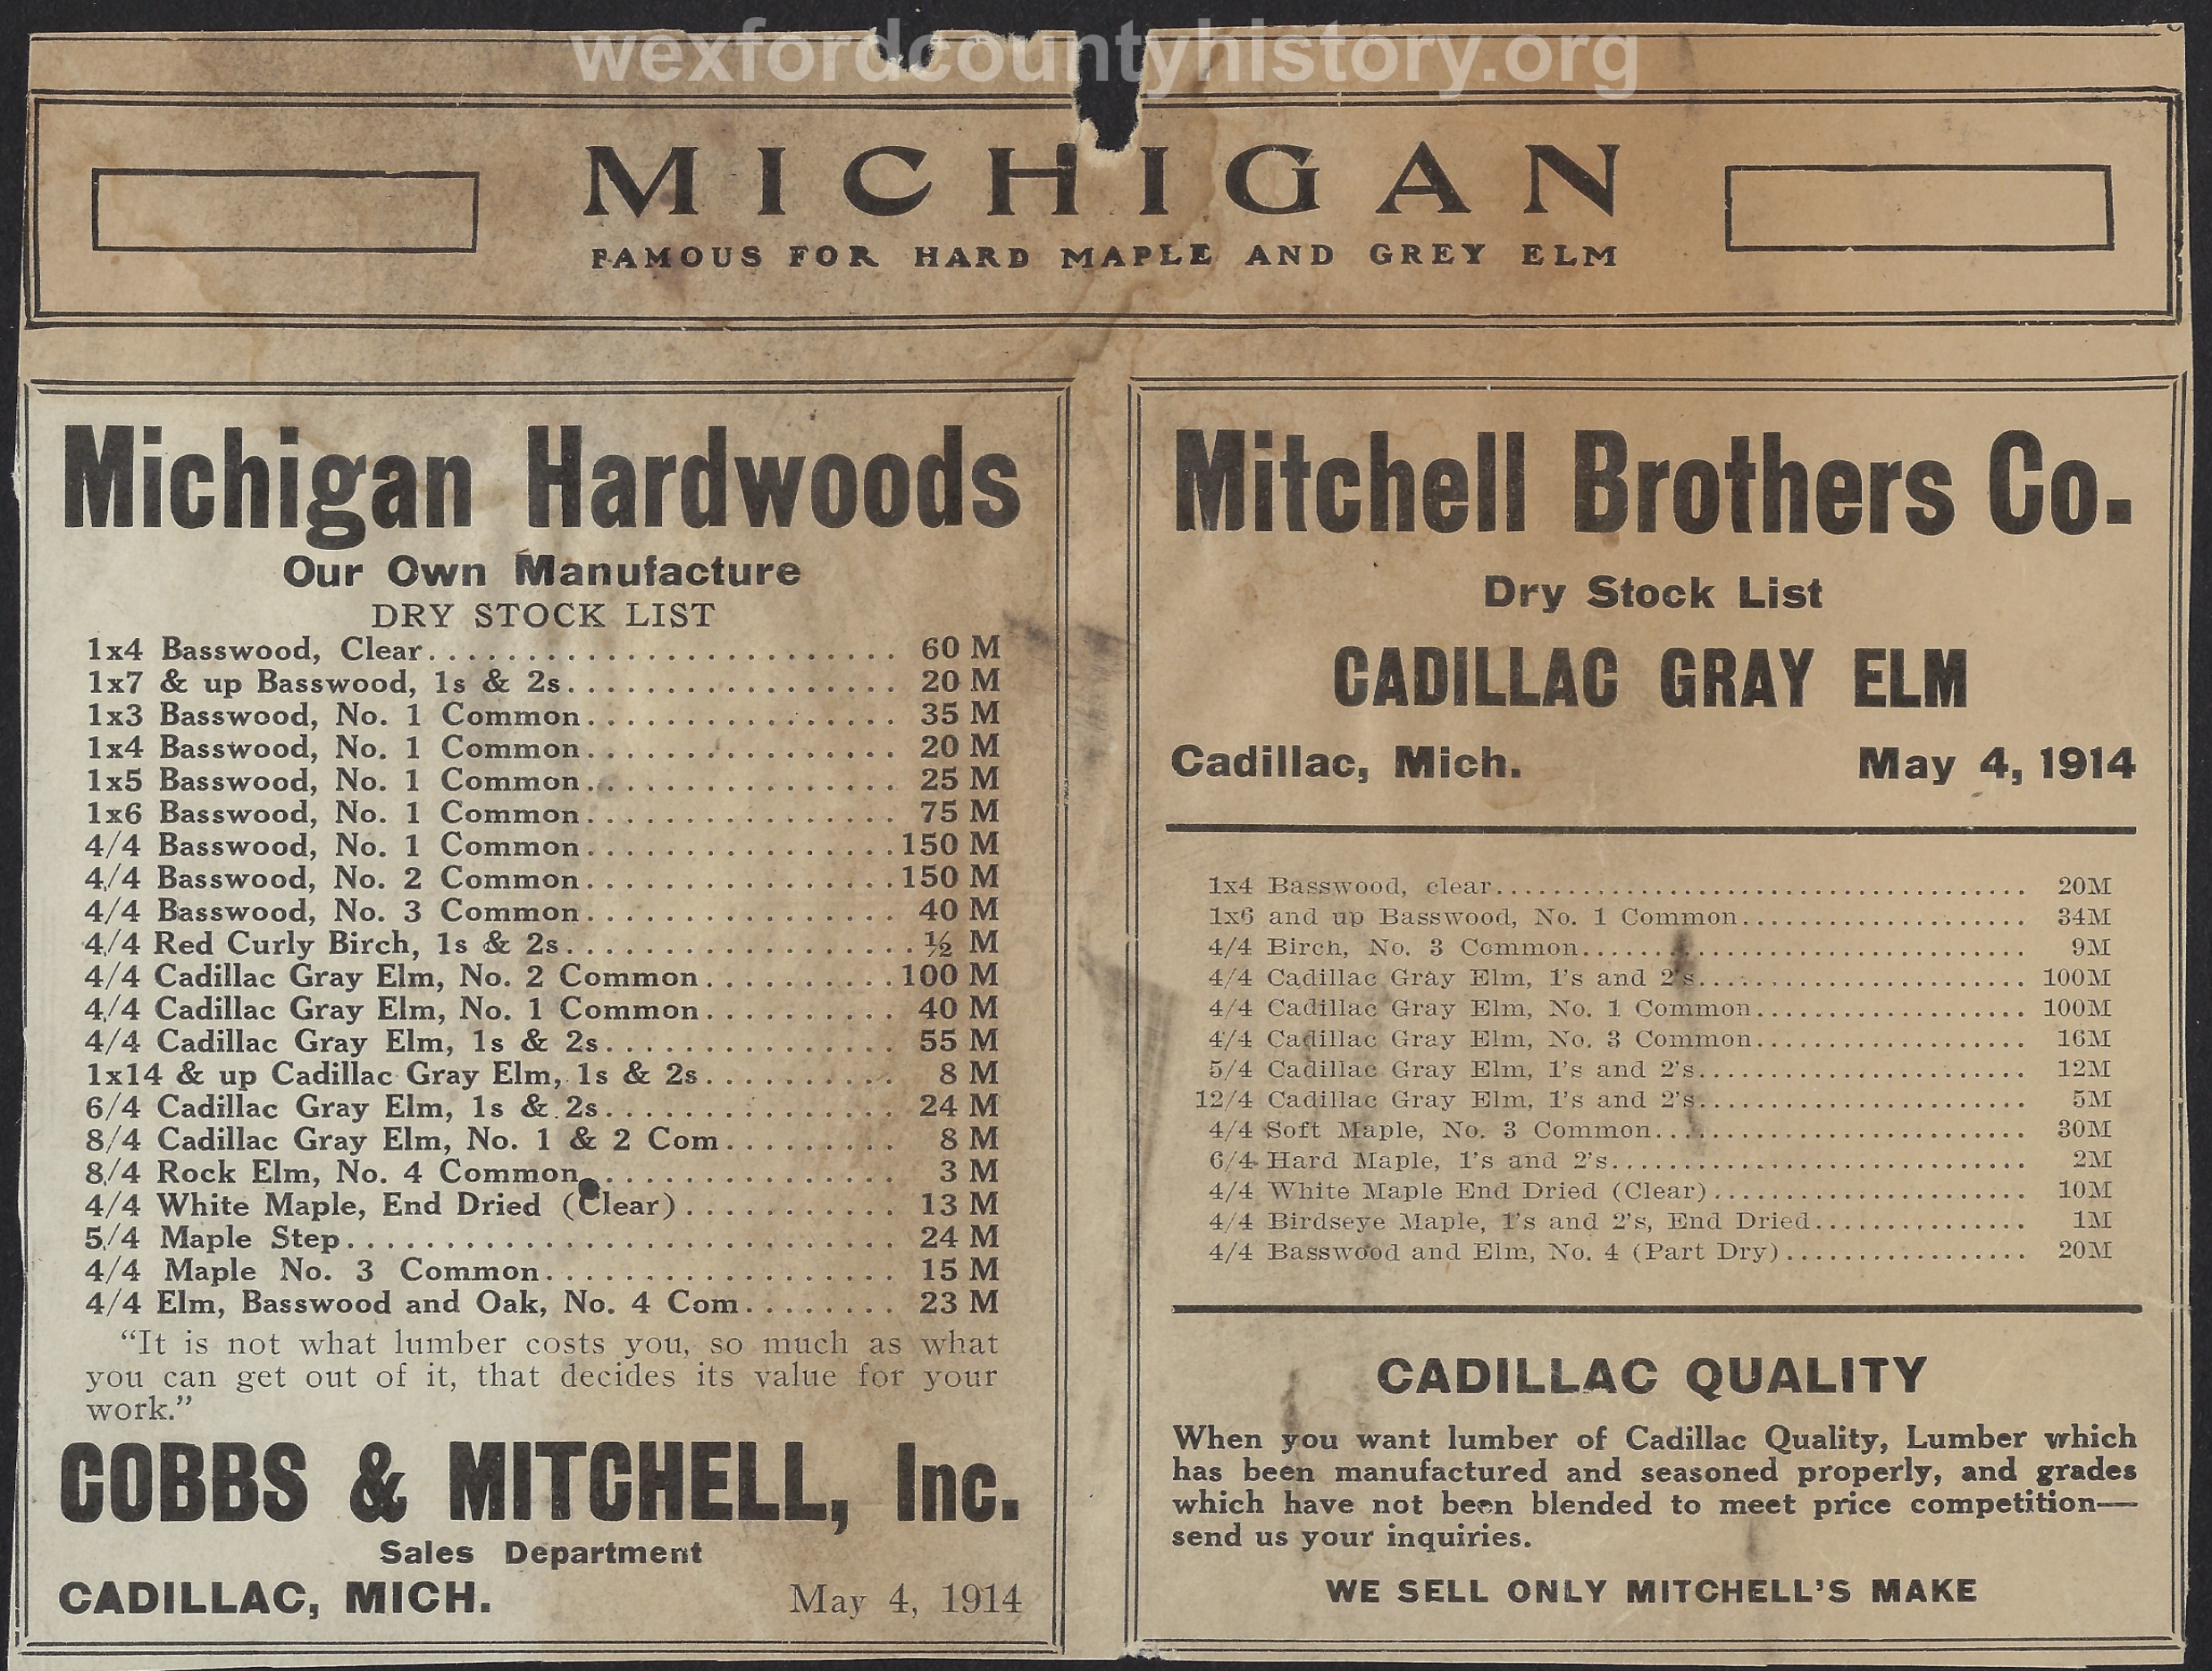 Cadillac-Business-Mitchell-Brothers-Company